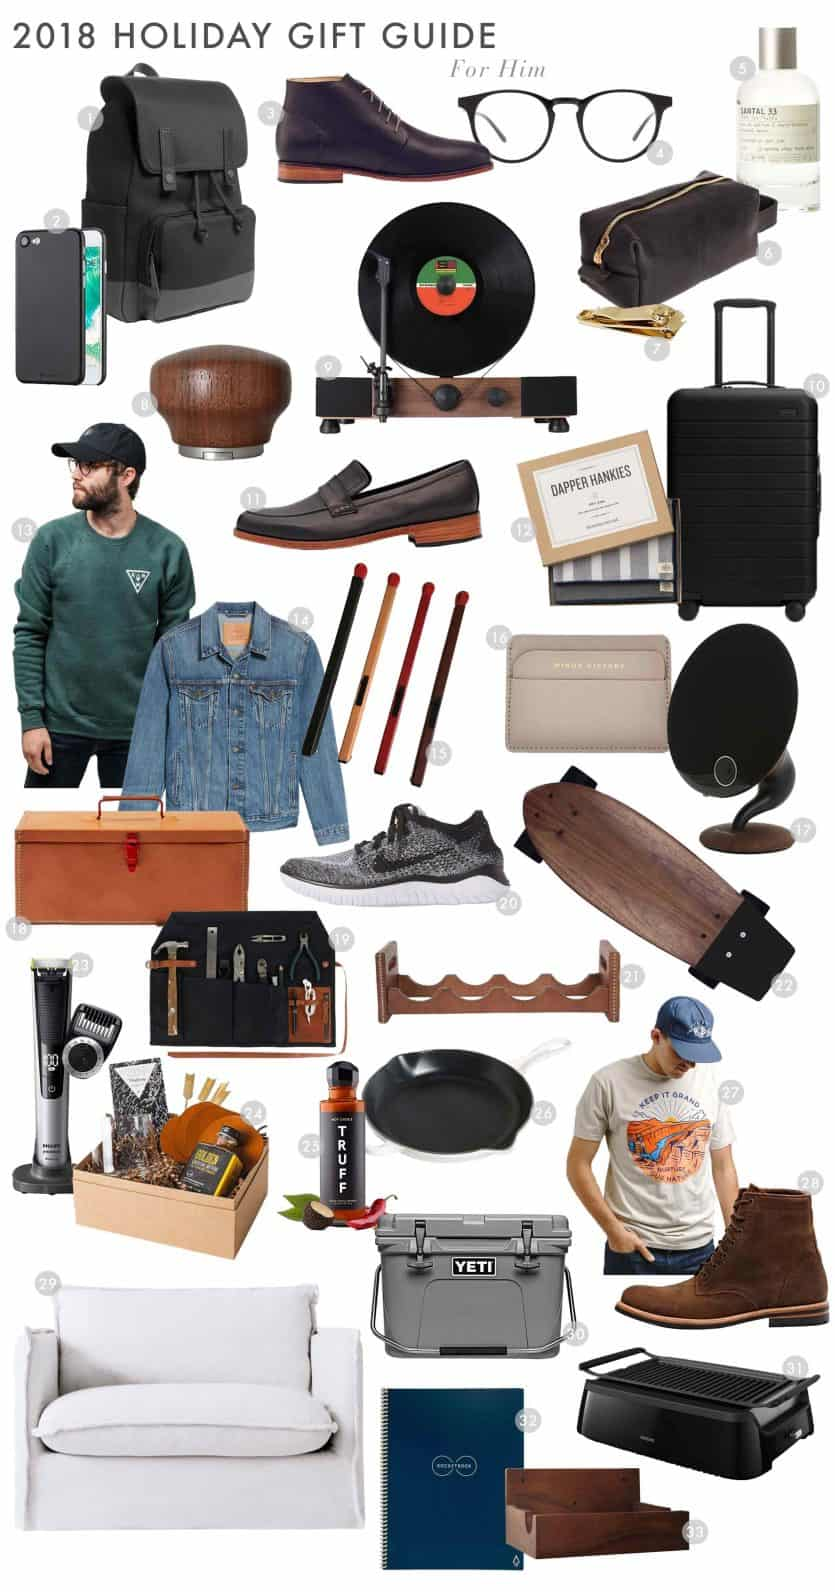 Emily Henderson 2018 Holiday Gift Guide For Him Roundup2